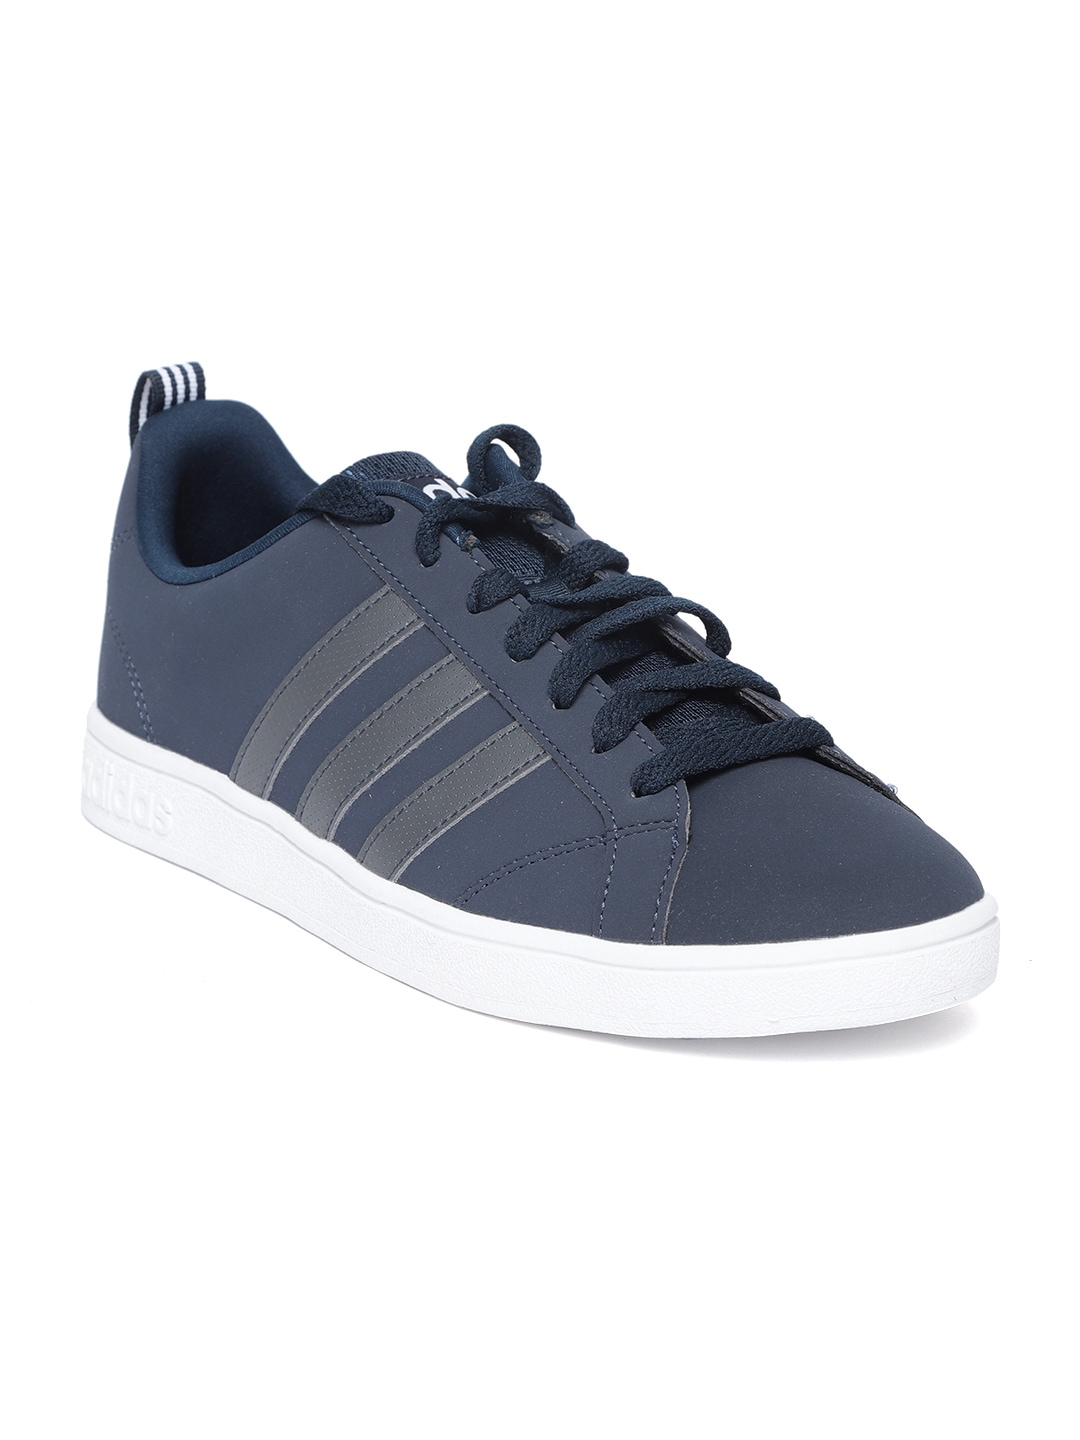 new style 57001 ba92c Adidas Tennis Shoes  Buy Adidas Tennis Shoes Online in India at Best Price